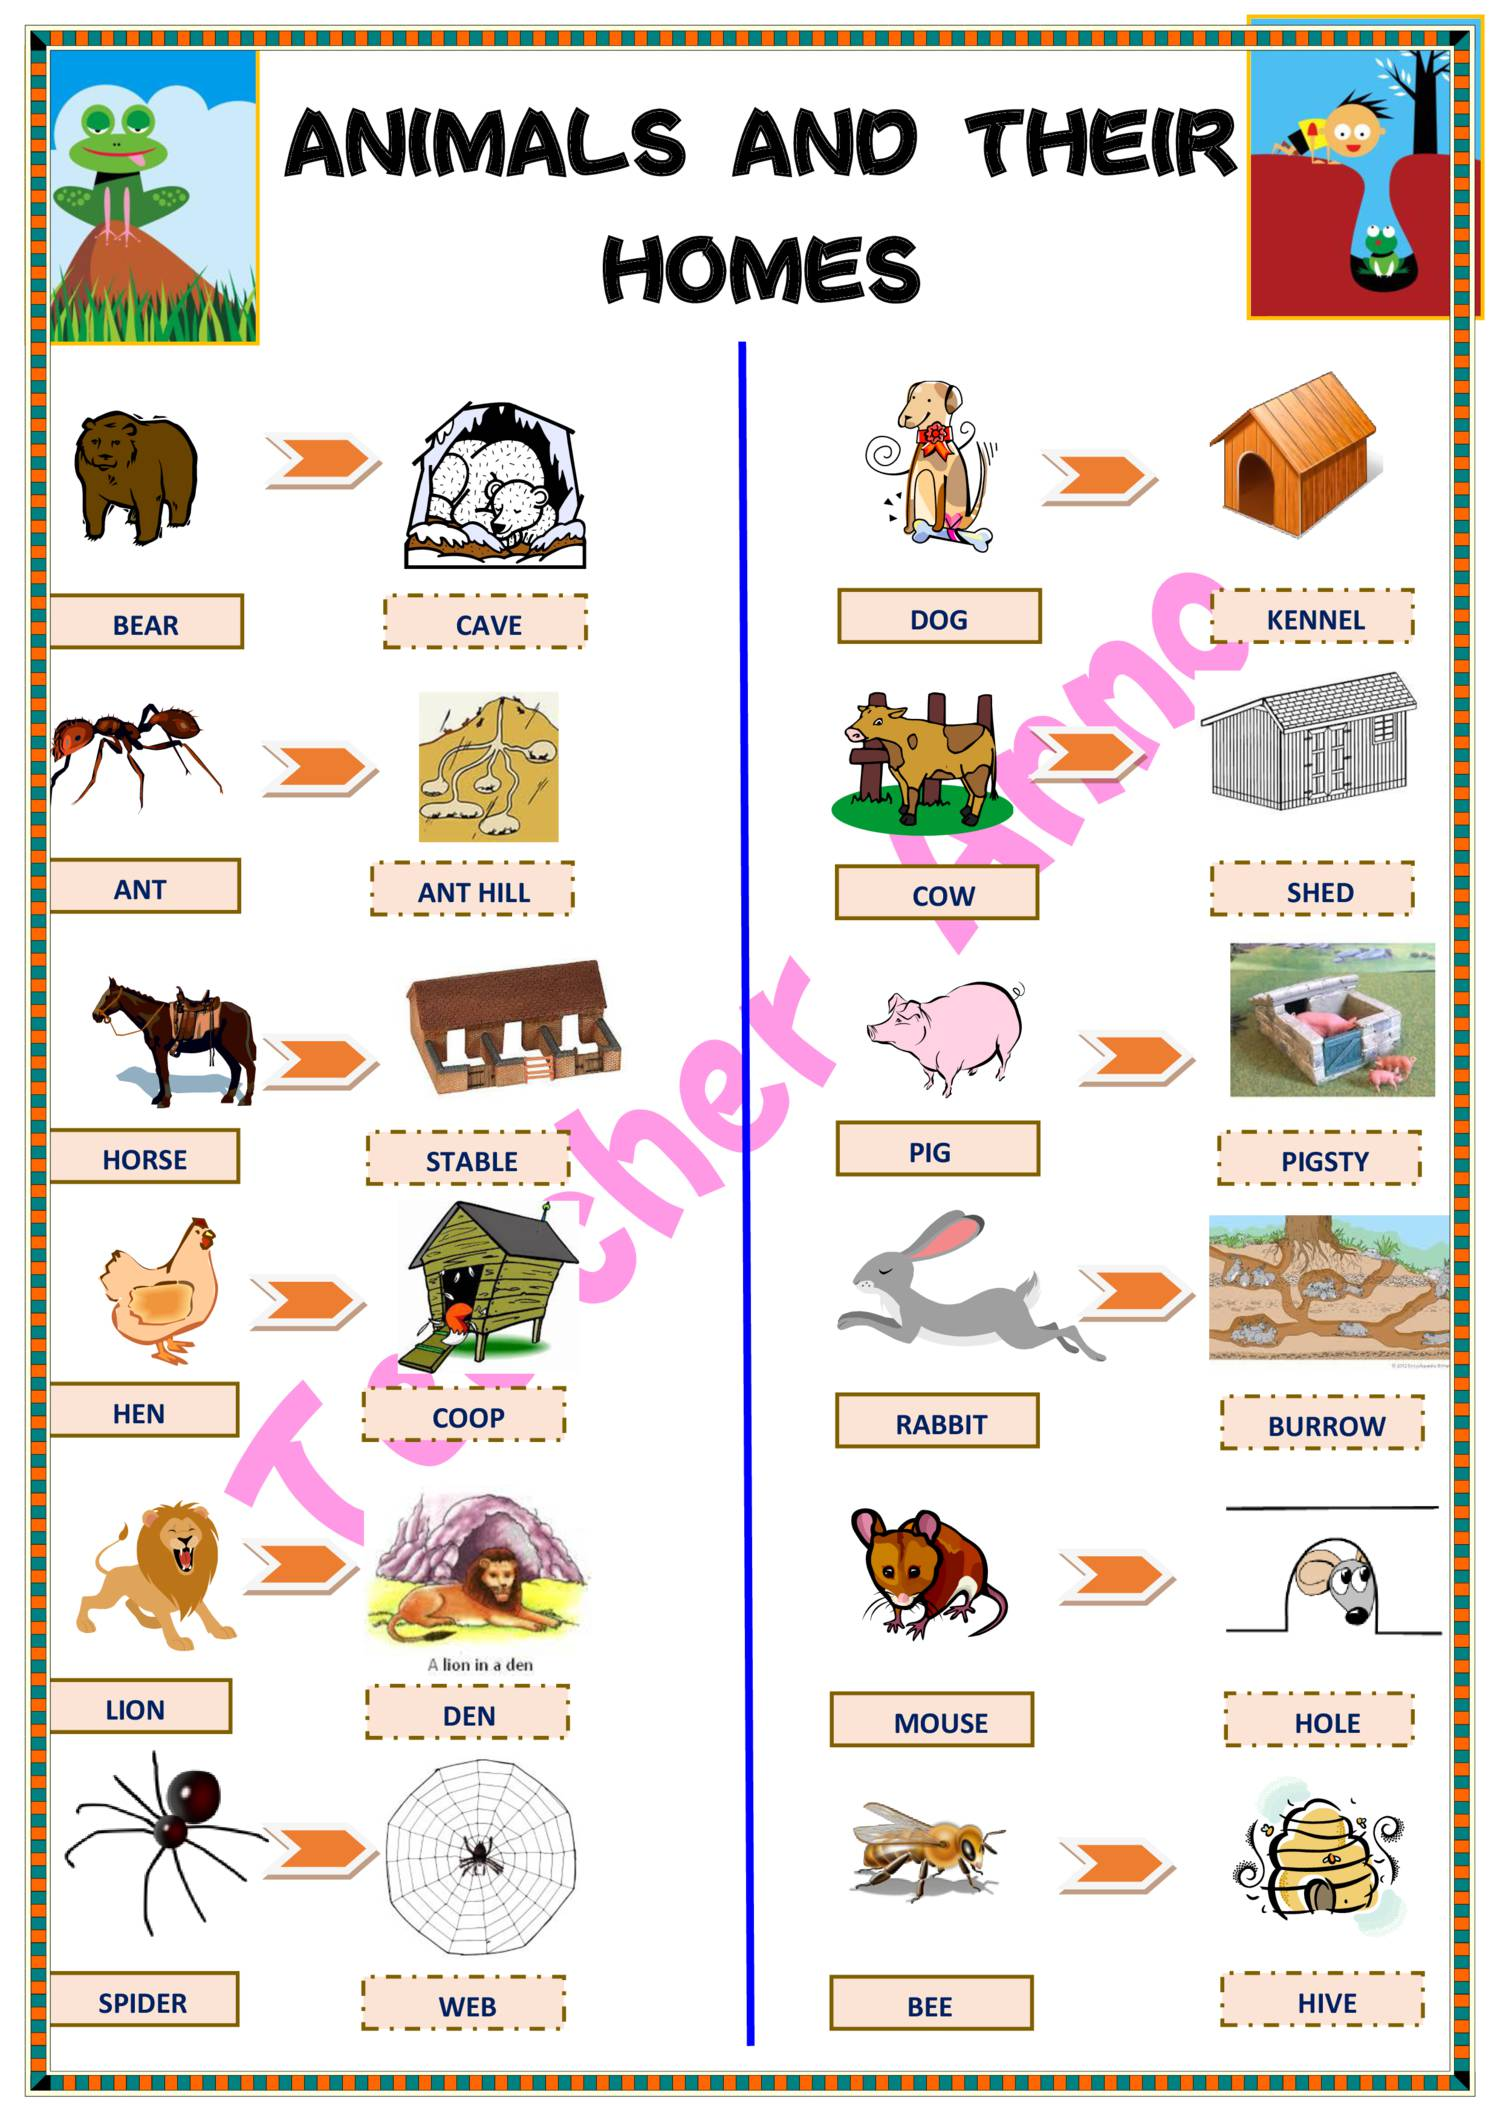 Animals And Their Home pdf | DocDroid